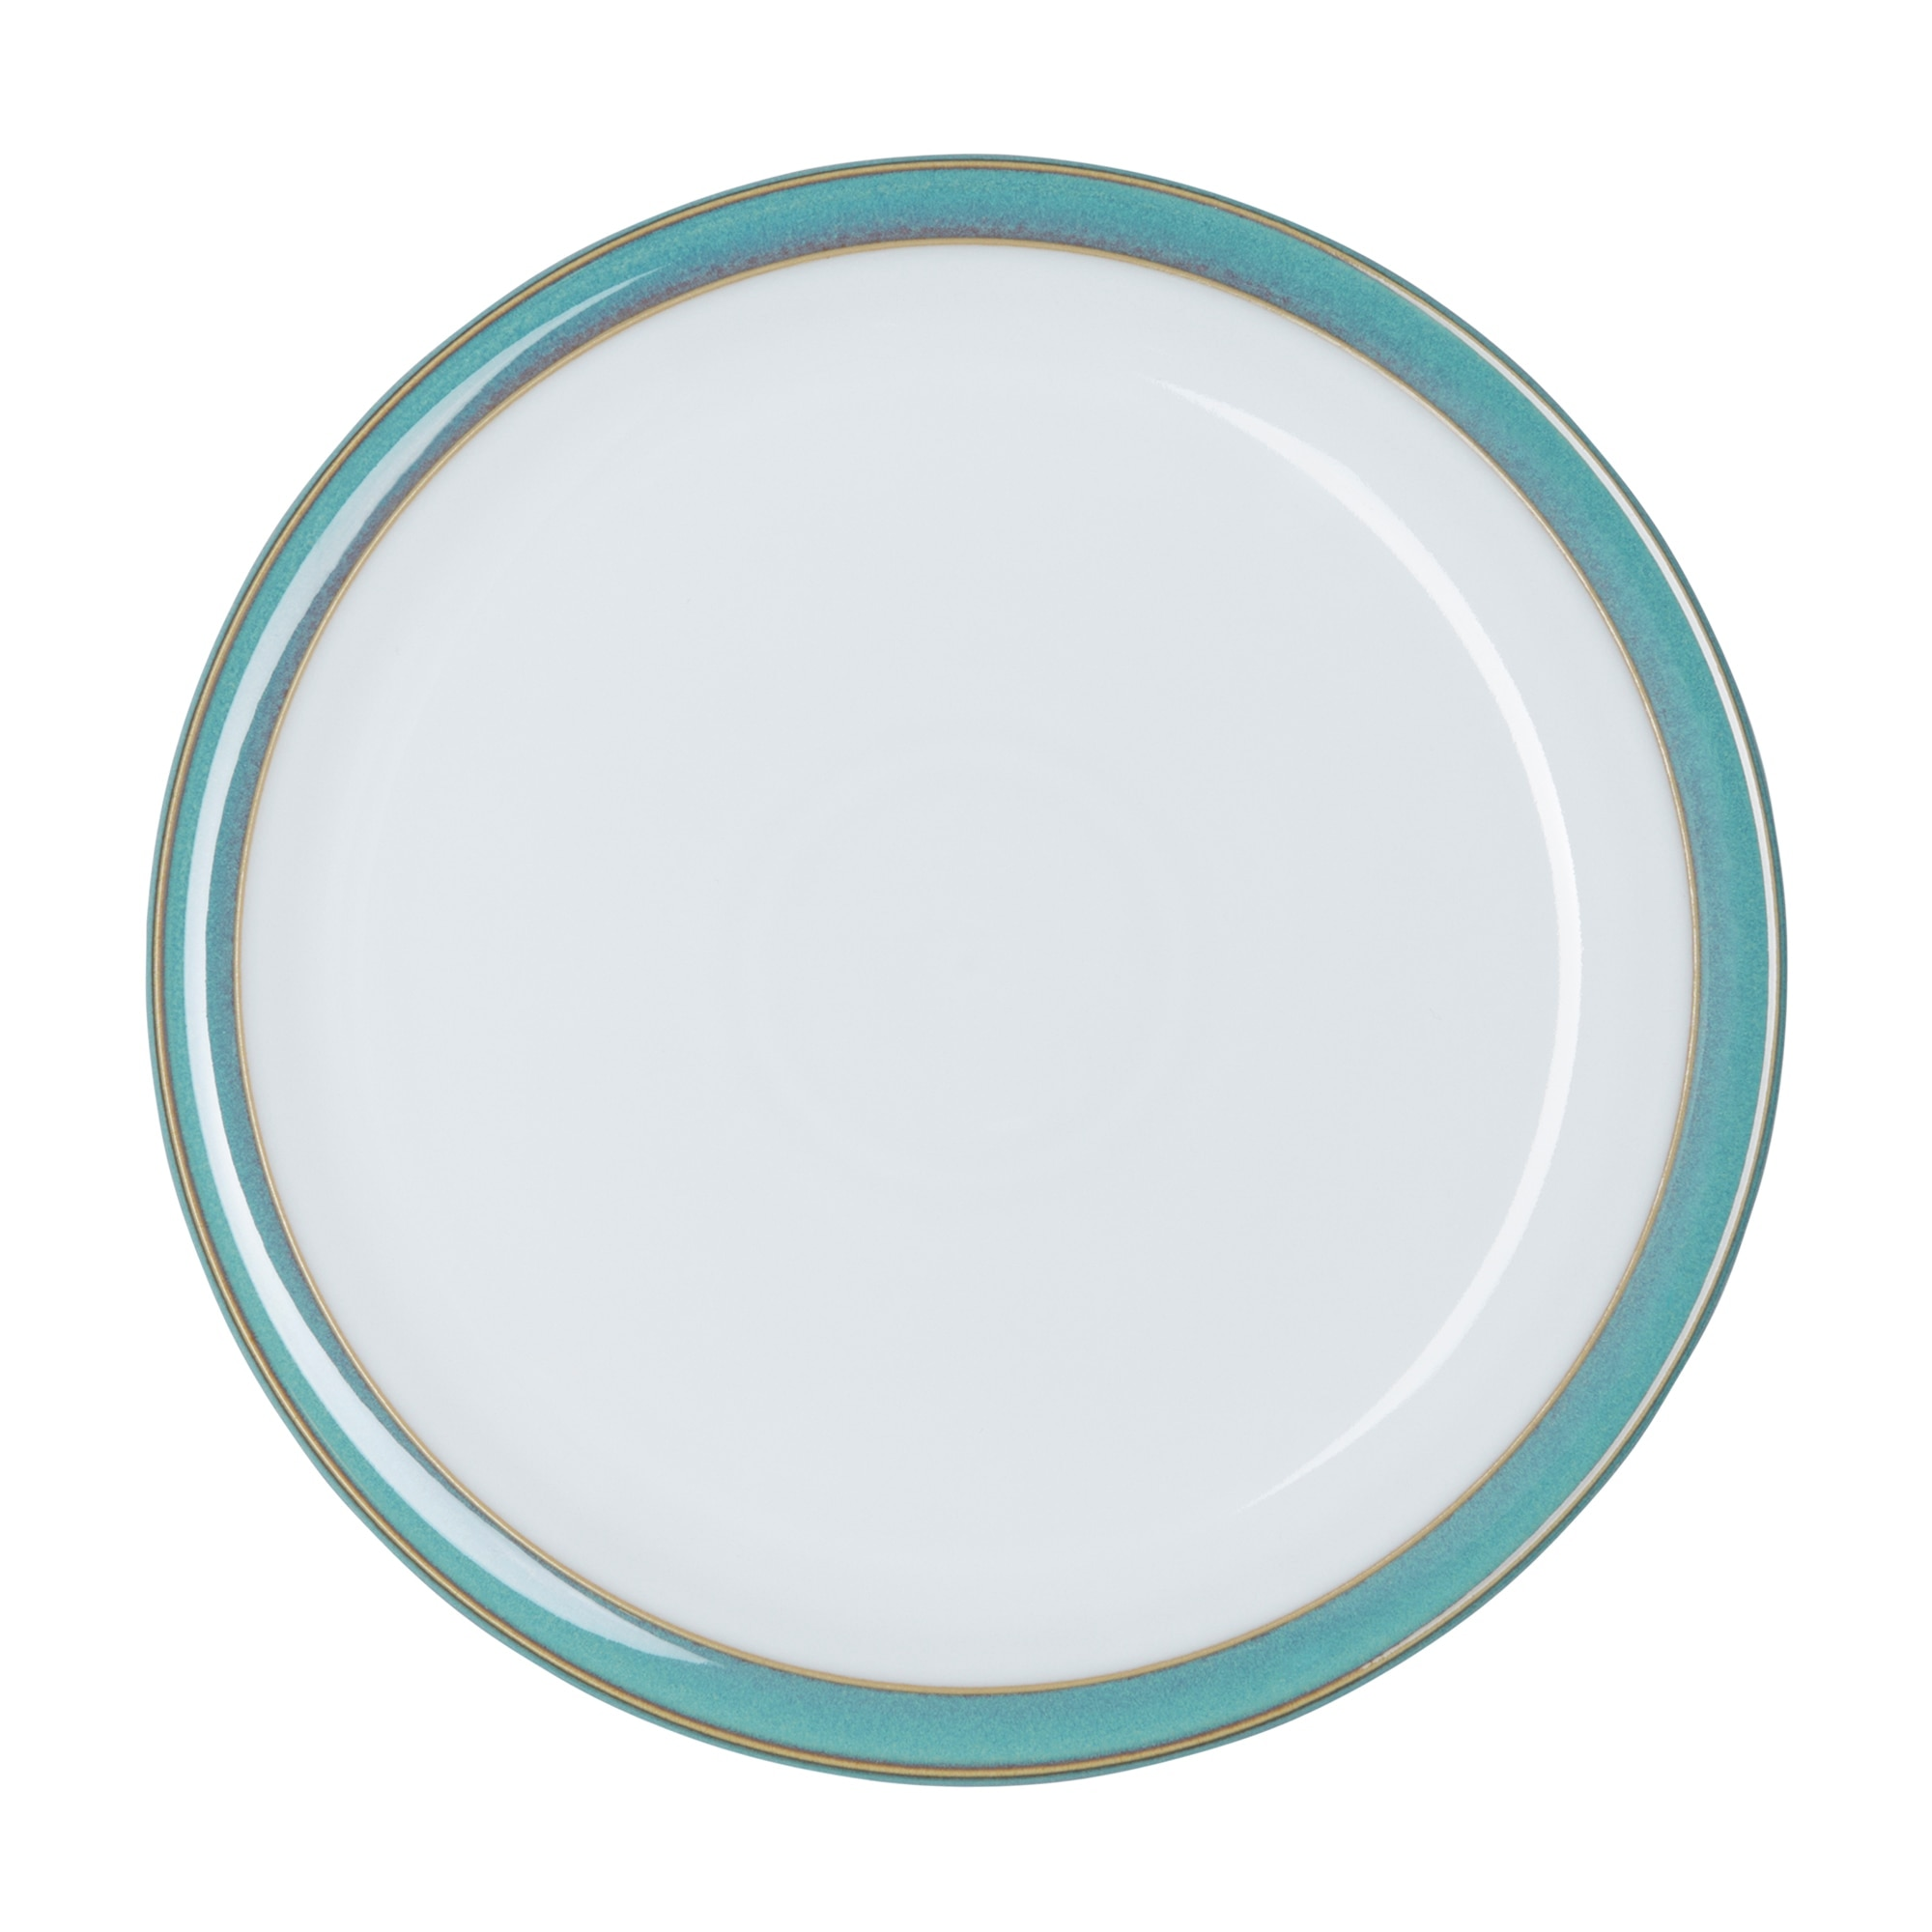 Compare prices for Denby Azure Dinner Plate